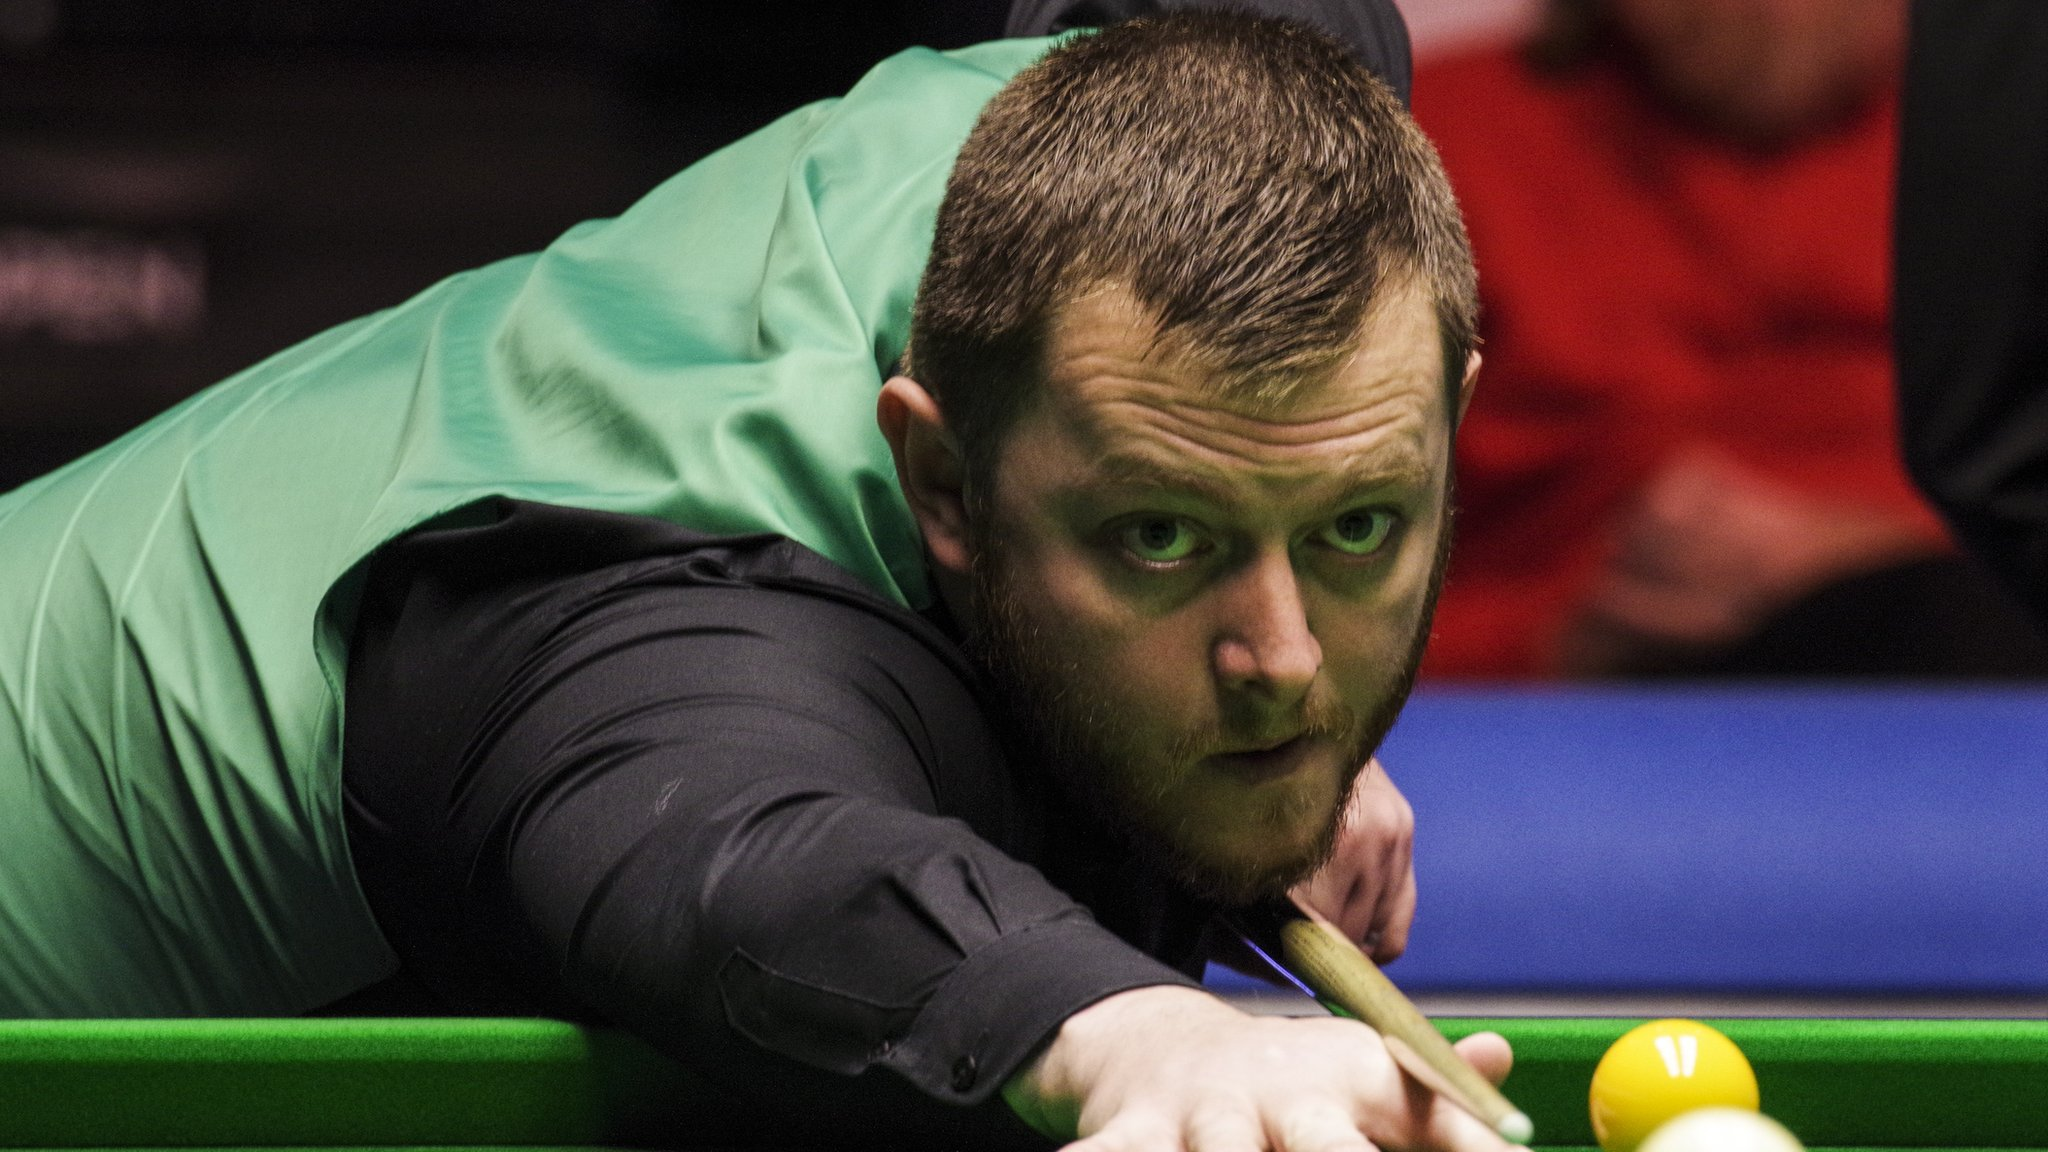 I don't deserve to be in final - Allen says he has shown tournament 'disrespect'